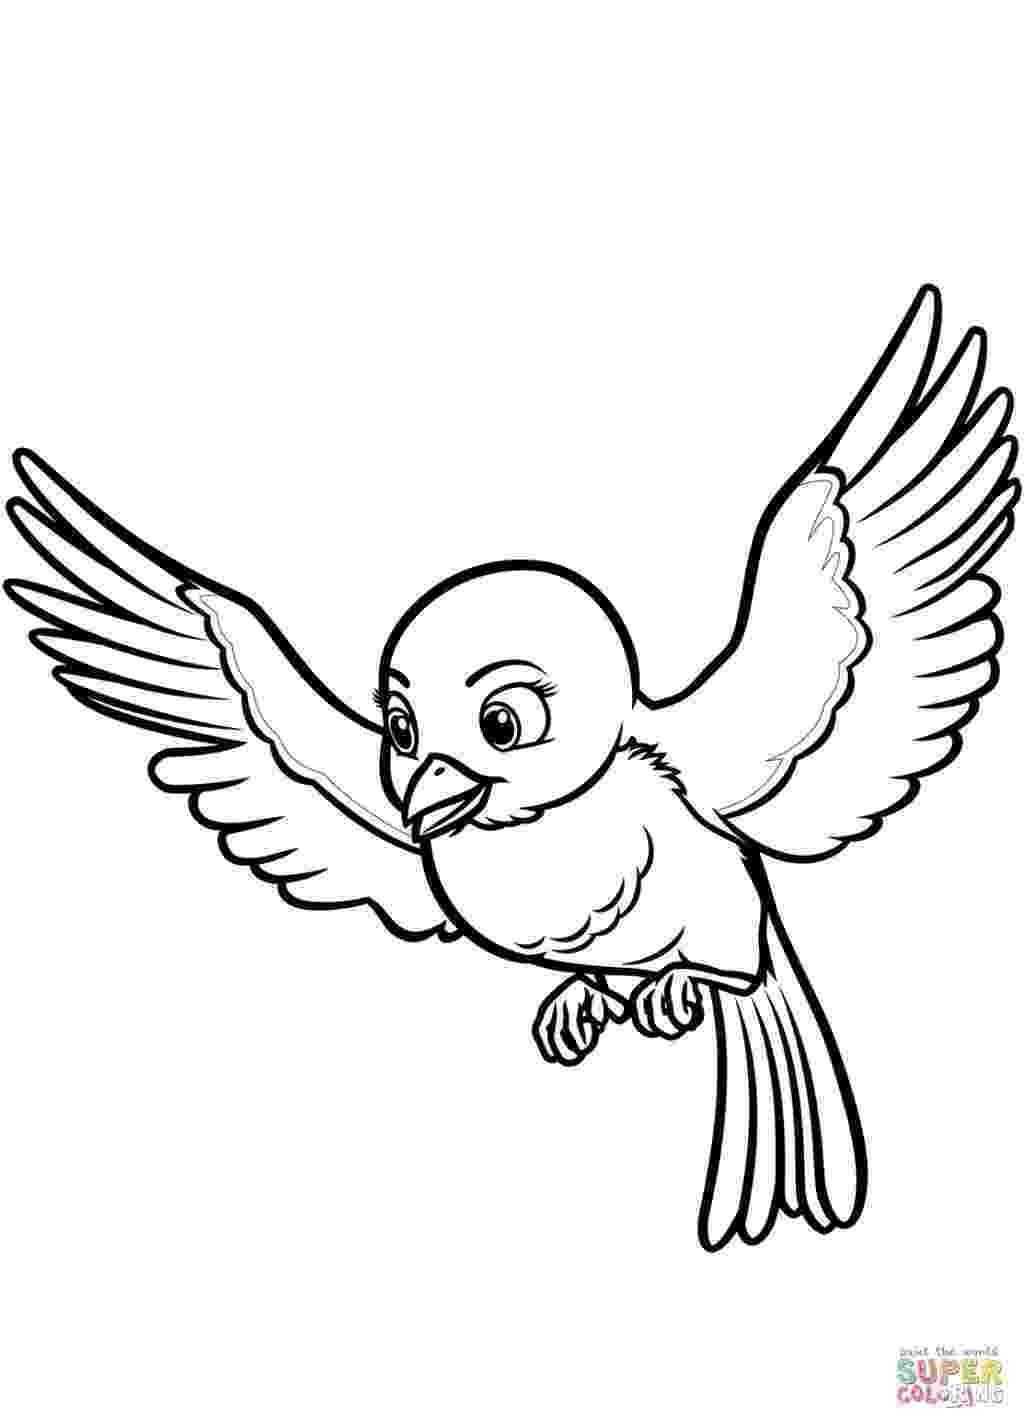 cockatiel coloring pages birds drawing for colouring free download on clipartmag cockatiel pages coloring